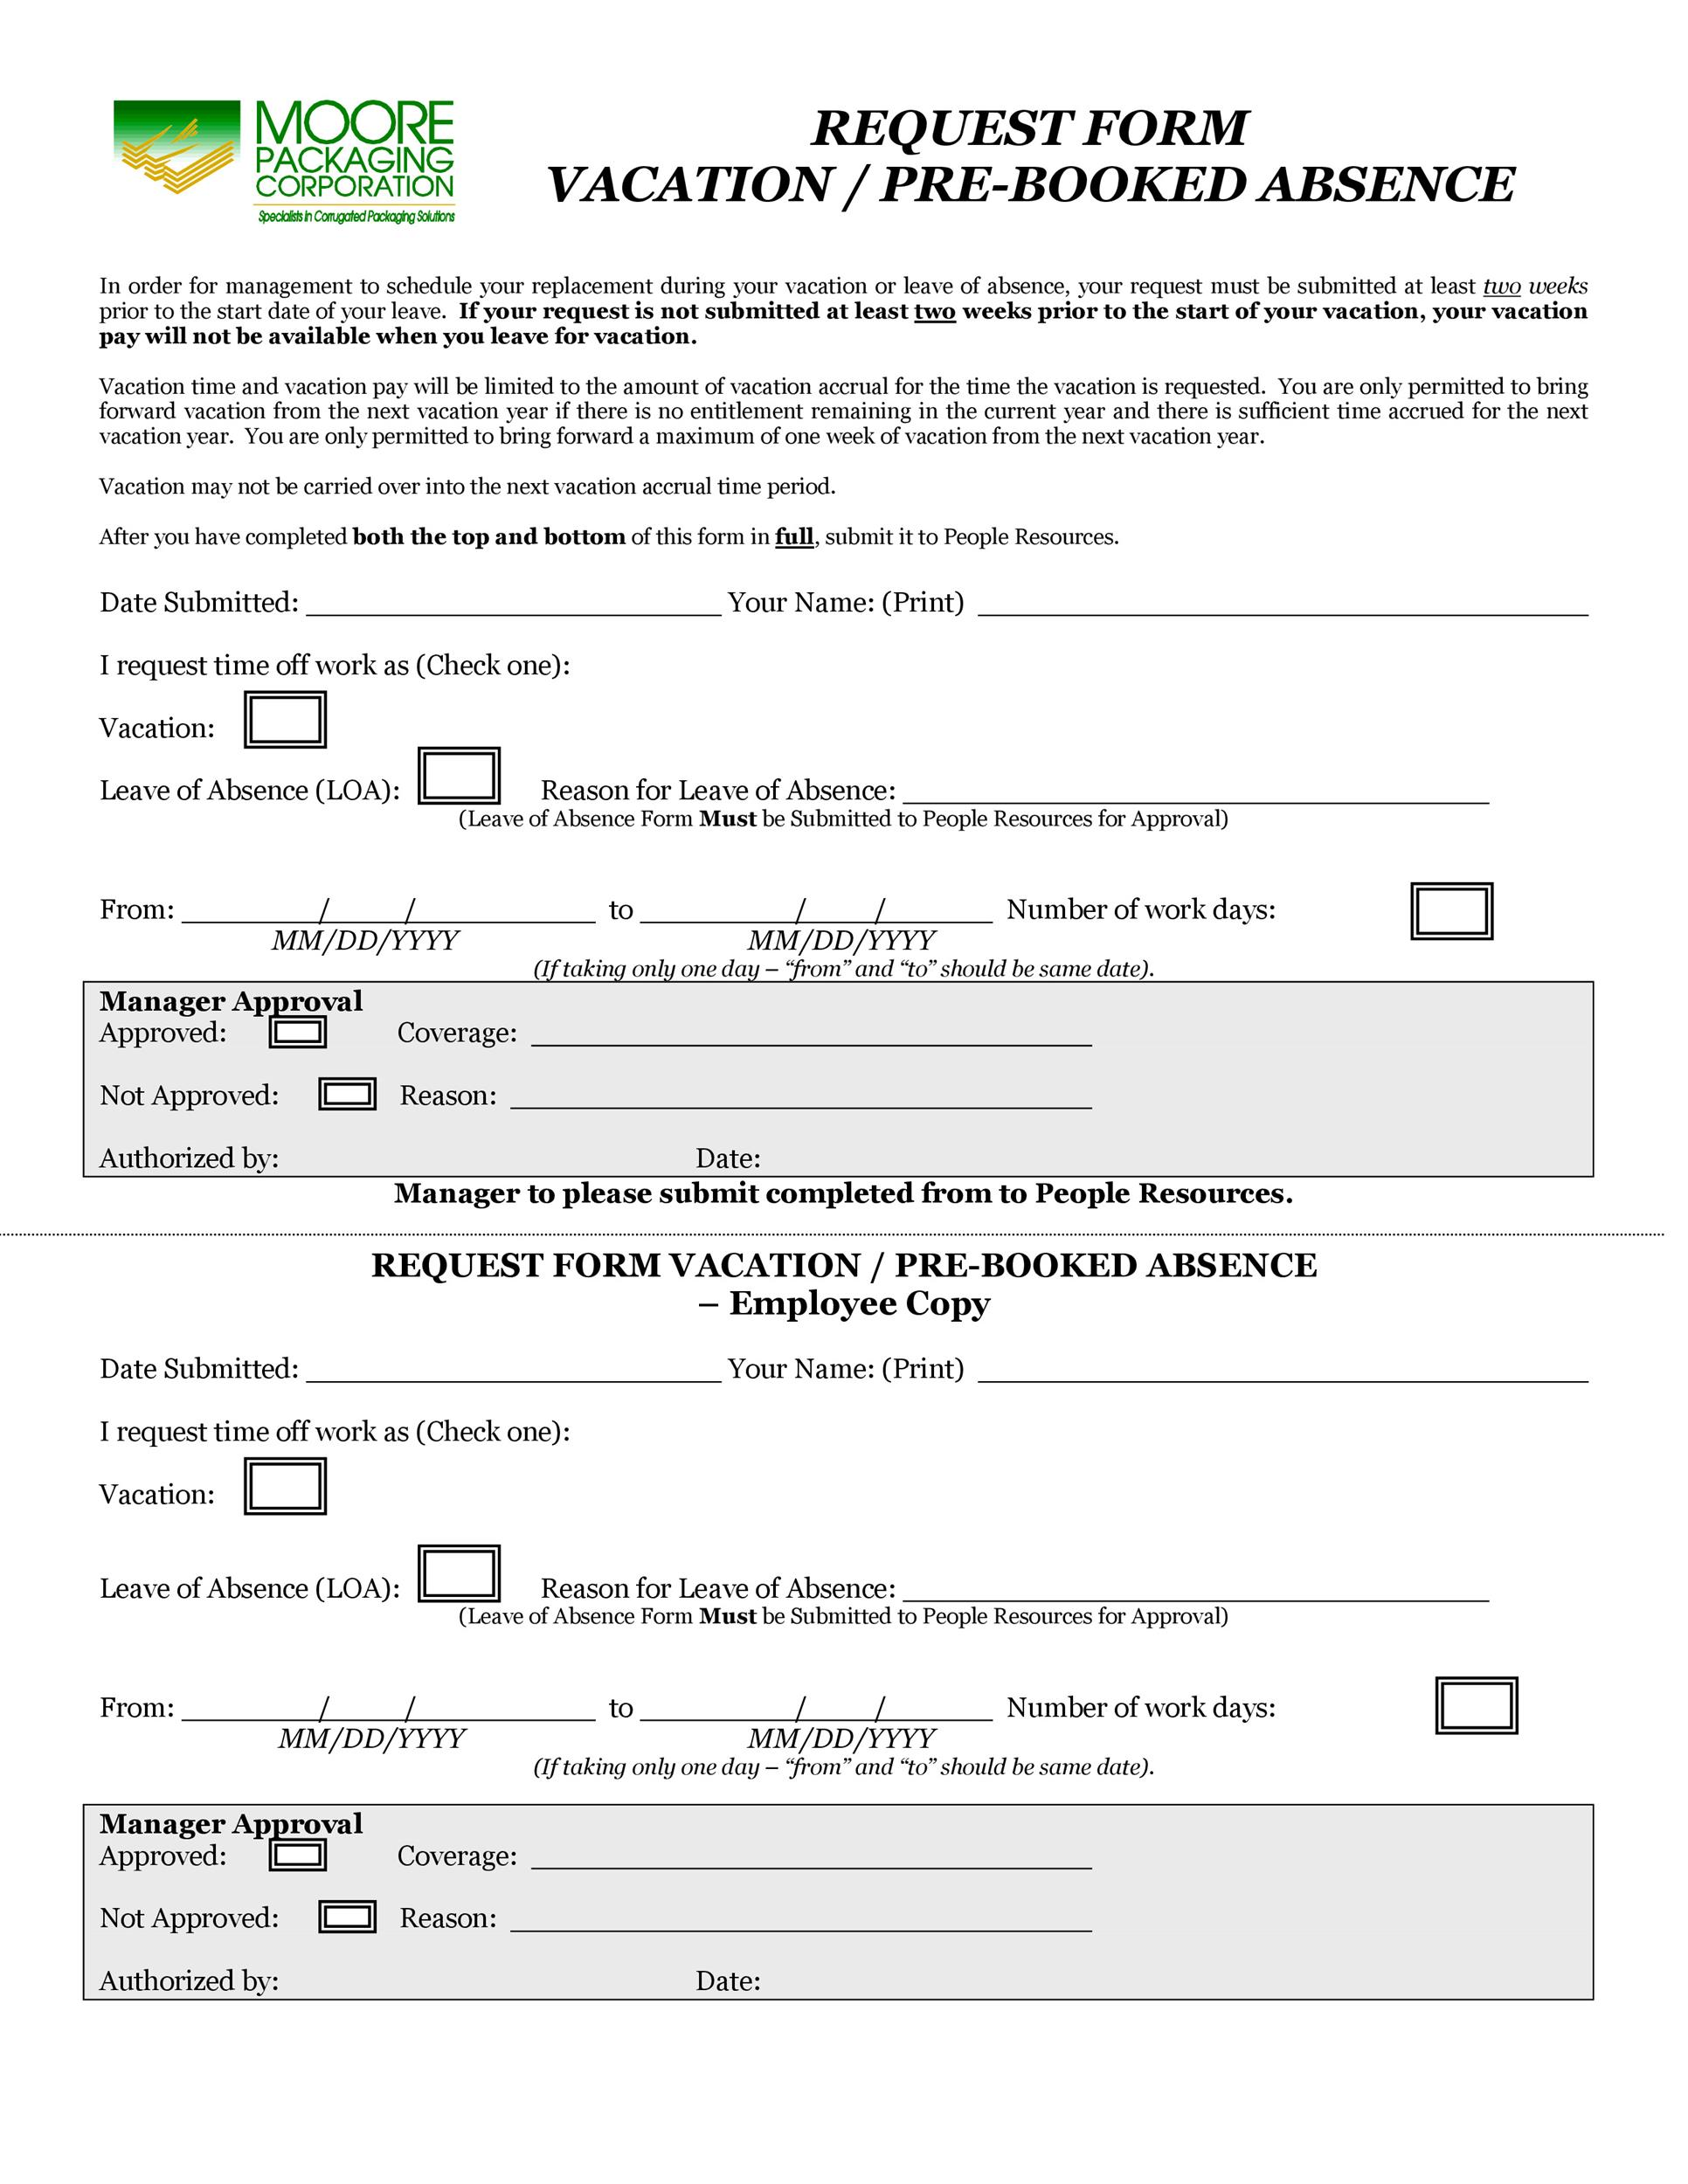 Free vacation request form 05